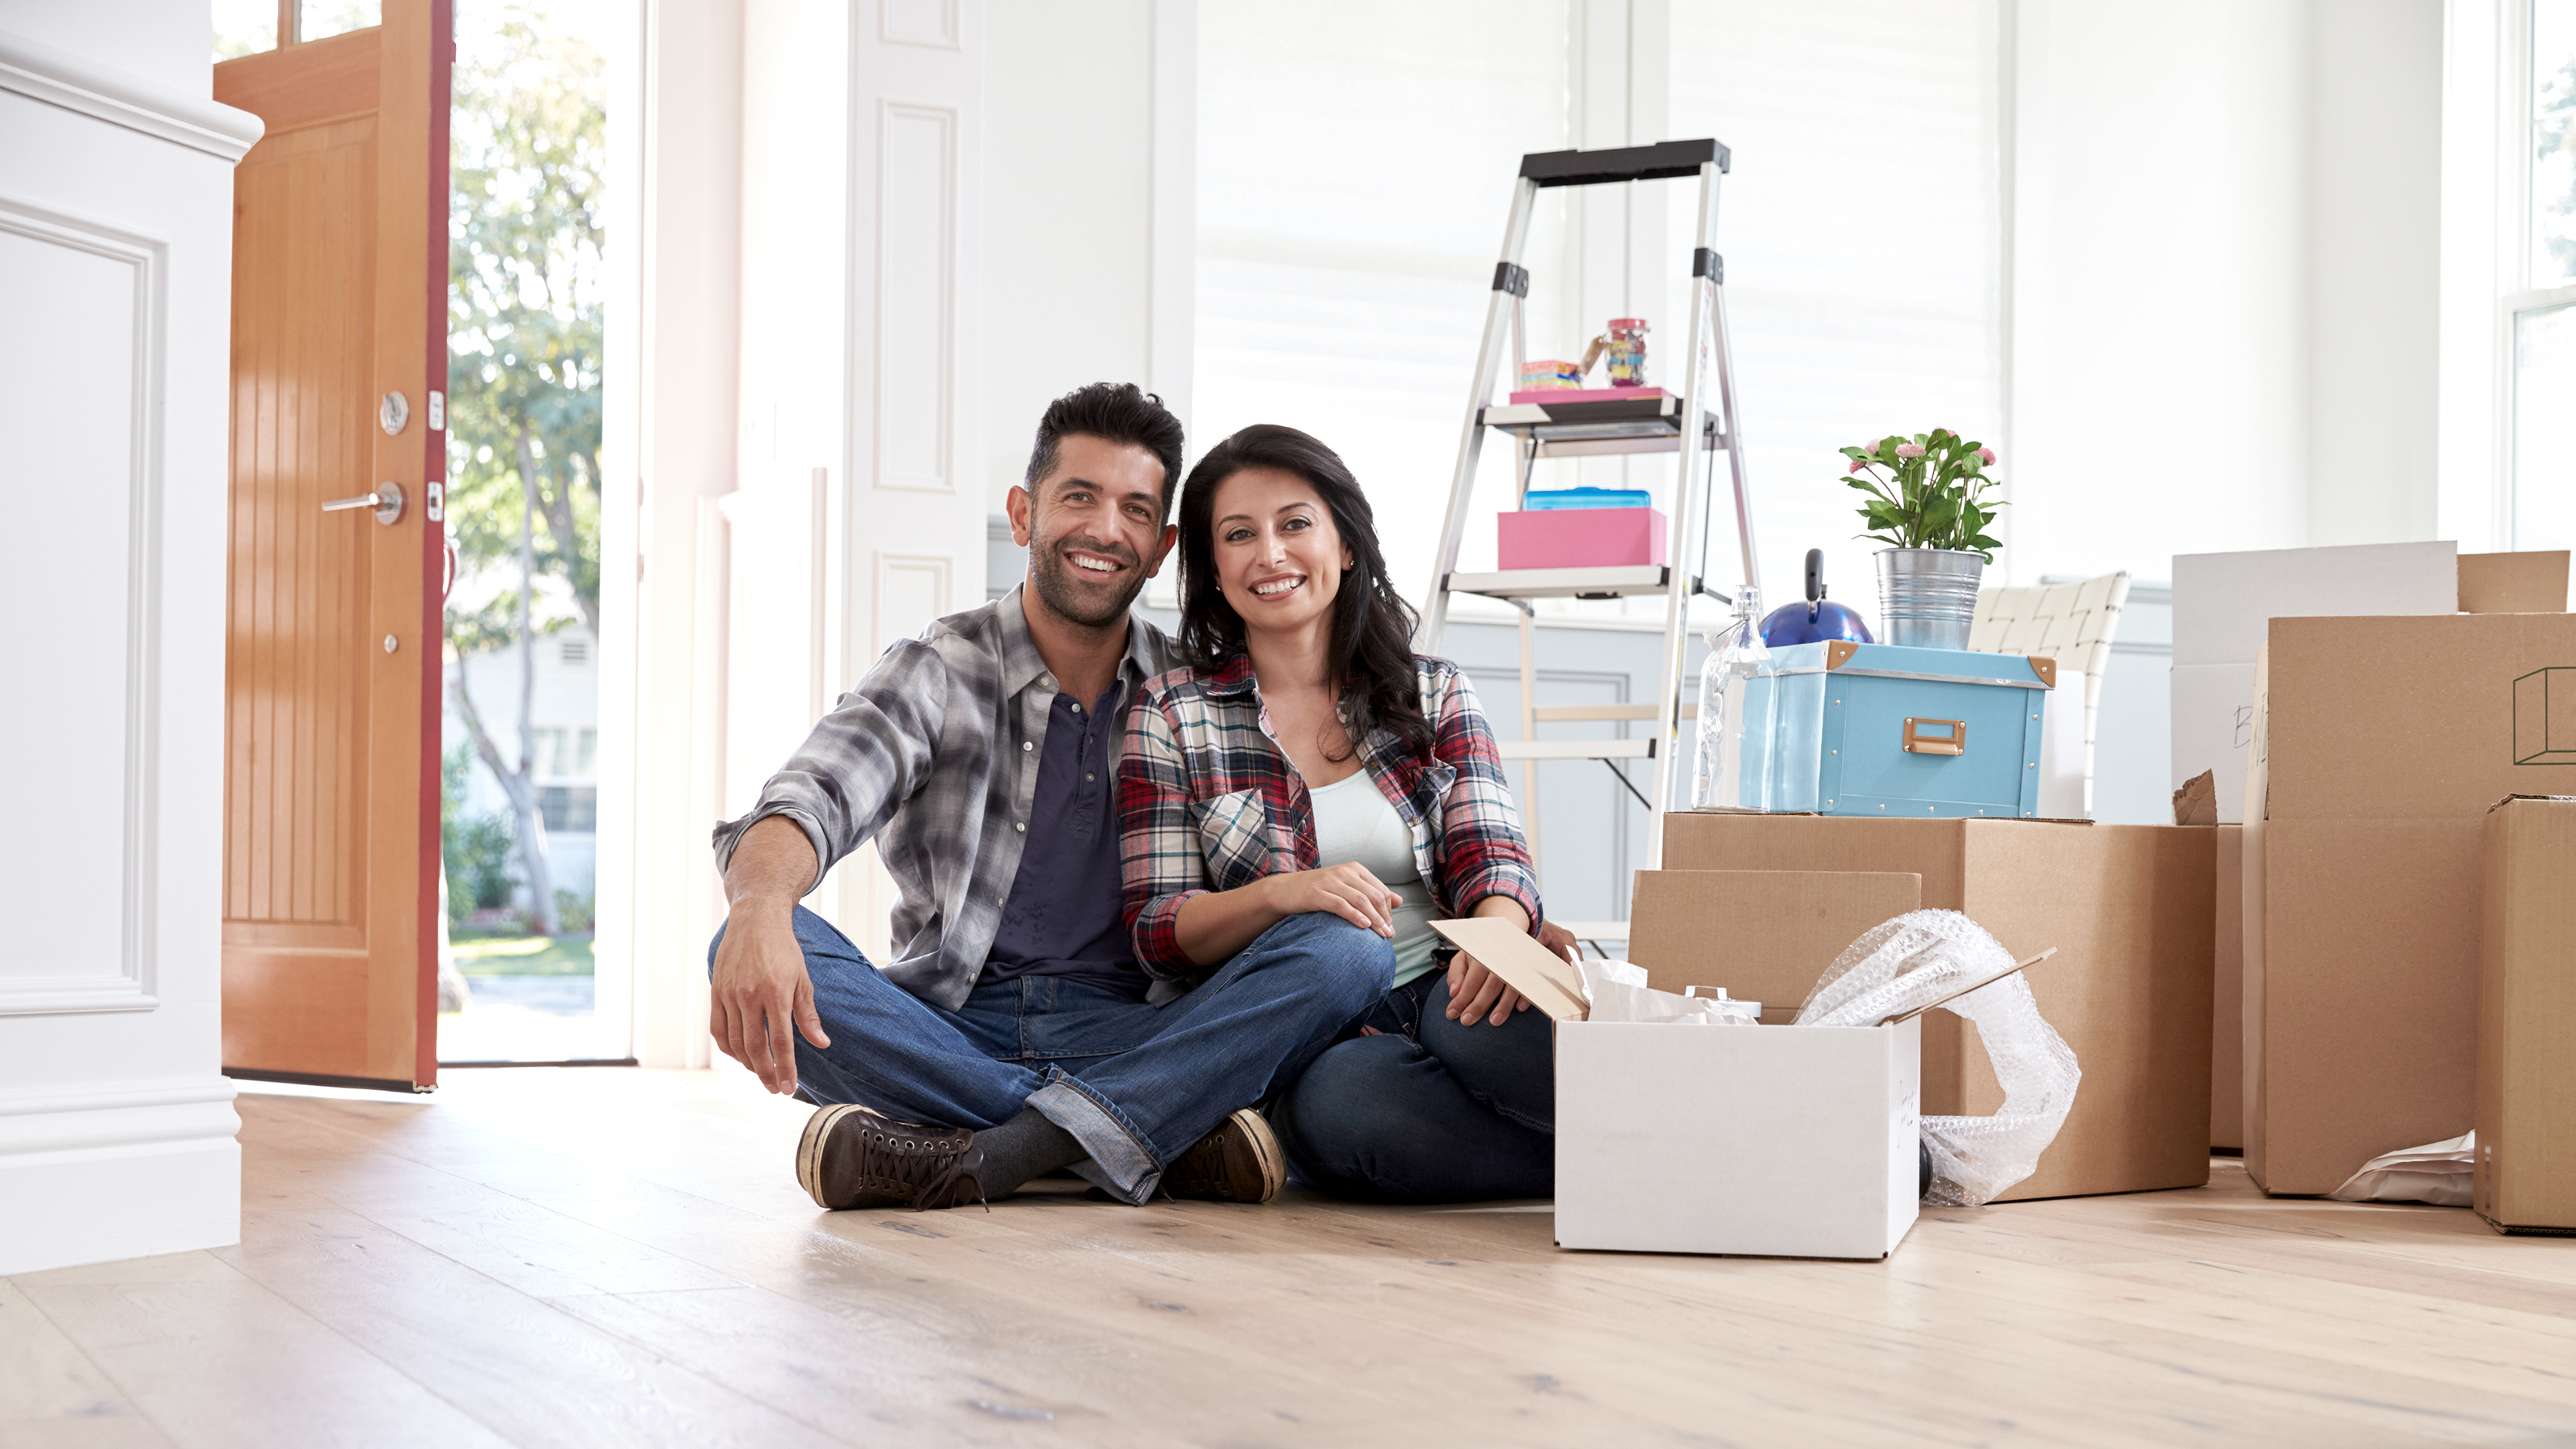 Portrait Of Hispanic Couple Moving Into New Home